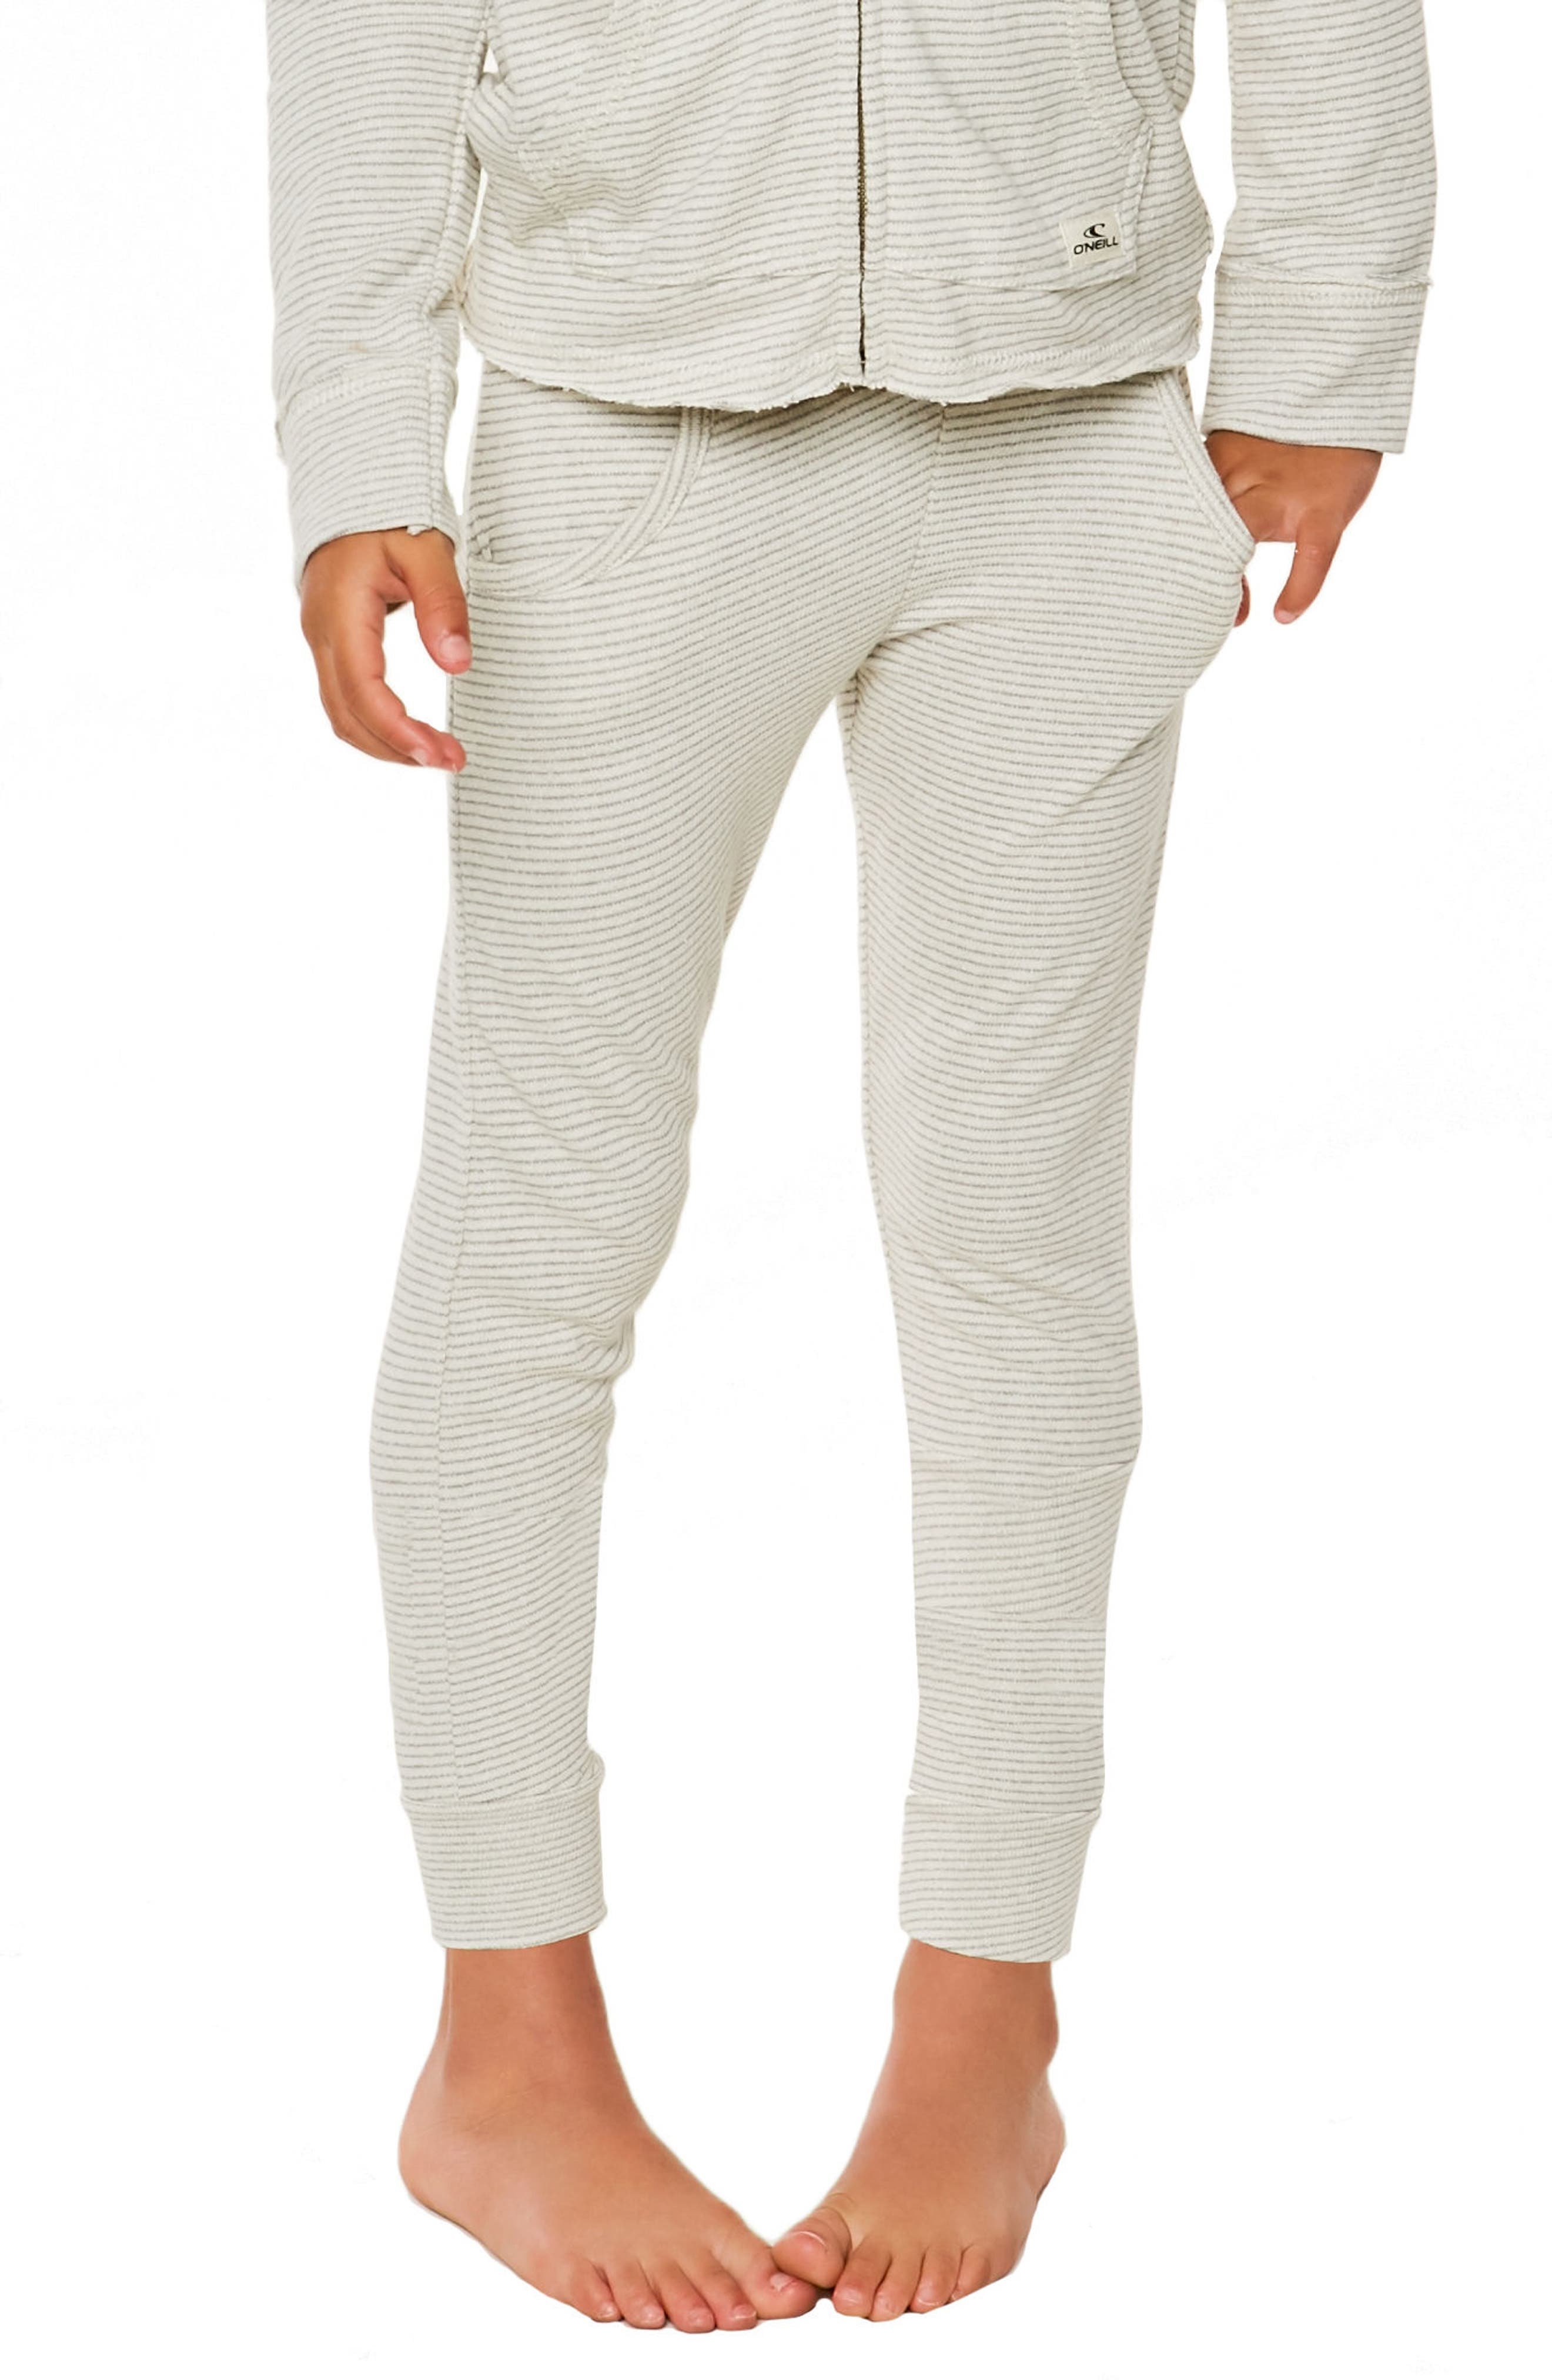 Shore Ahoy! French Terry Pants,                             Alternate thumbnail 4, color,                             Grey - Gry